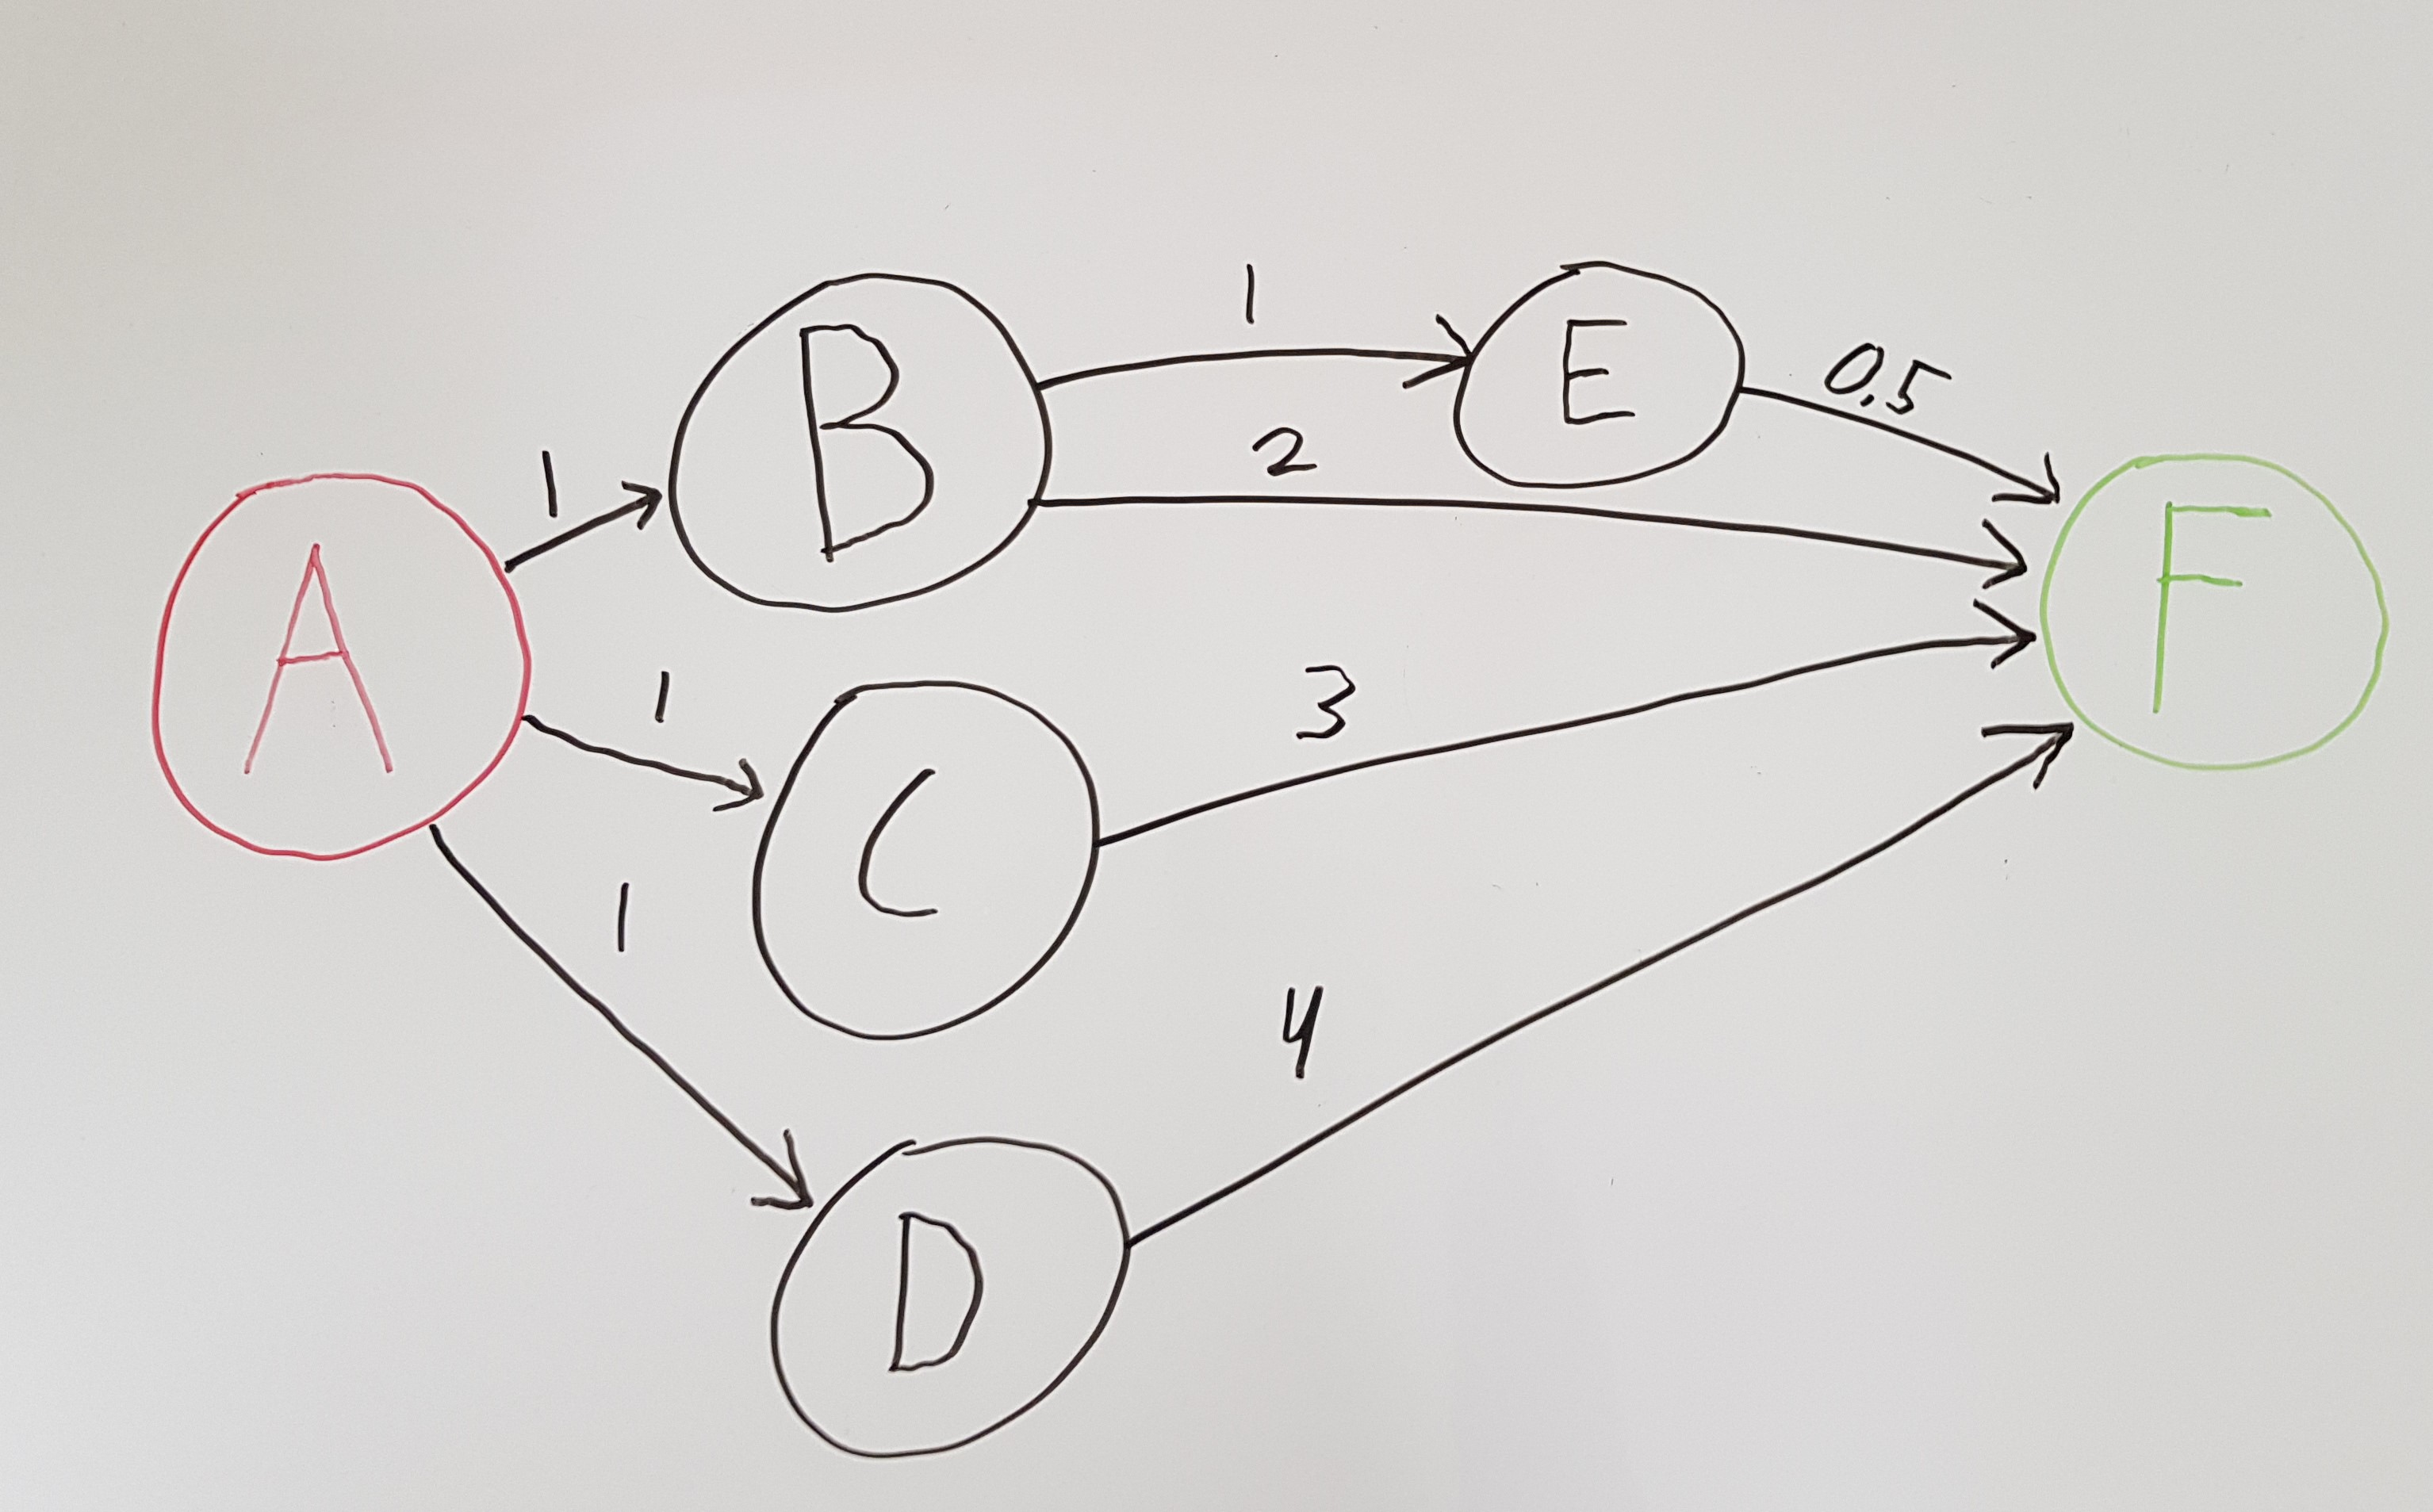 A weighted directed graph on a whiteboard